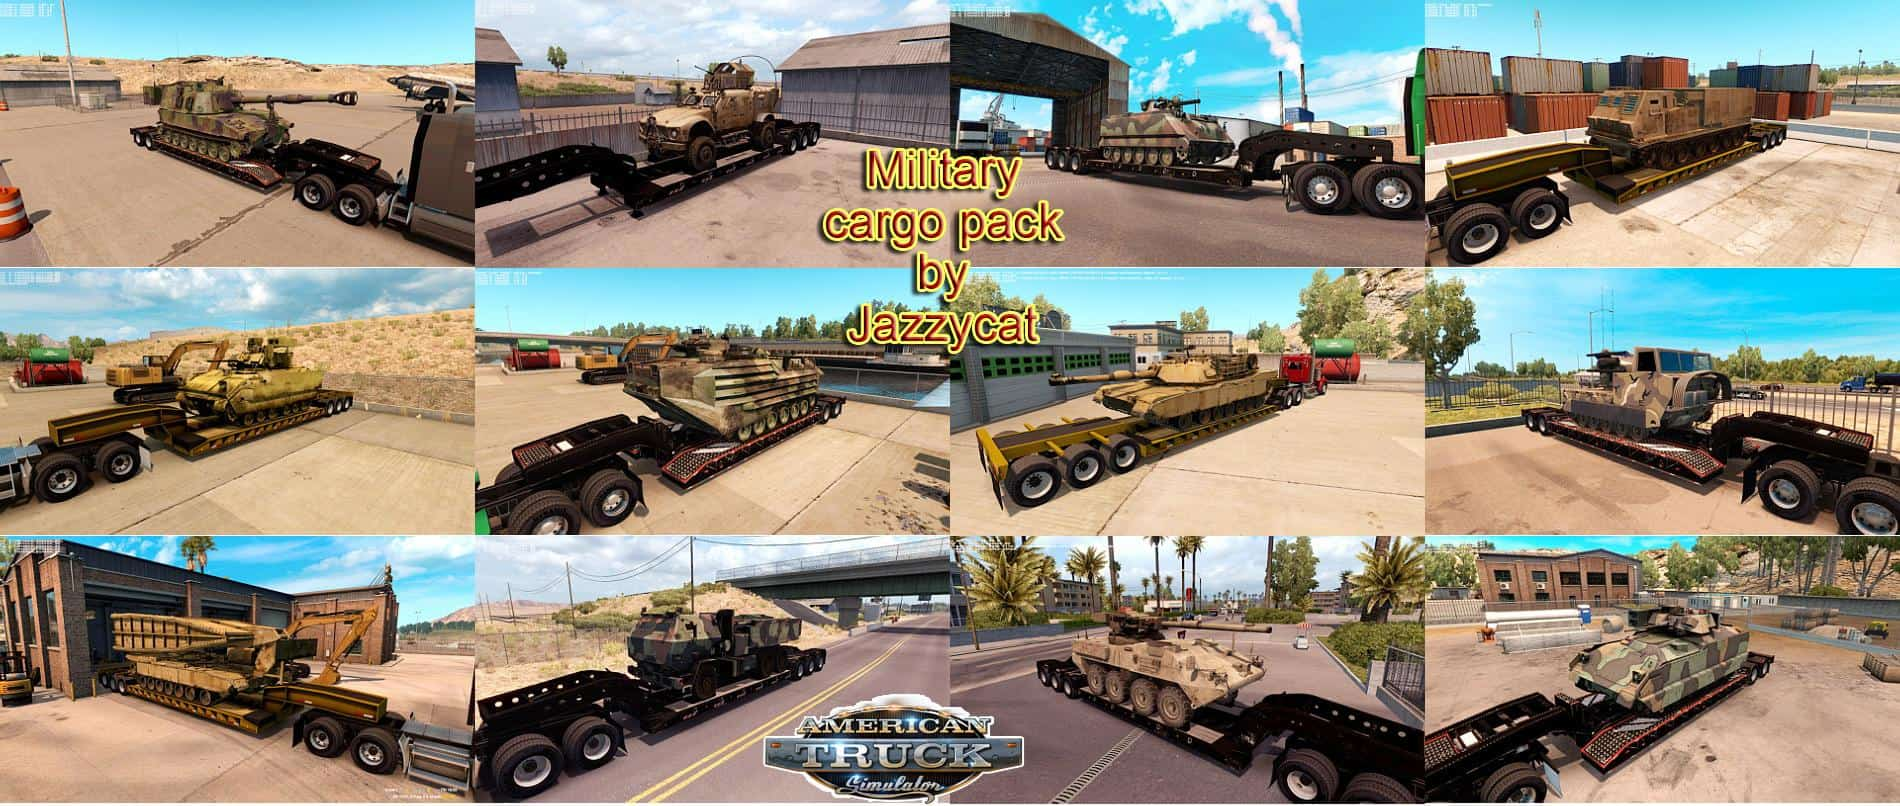 MILITARY CARGO PACK BY JAZZYCAT V1 0 2 ATS - American Truck